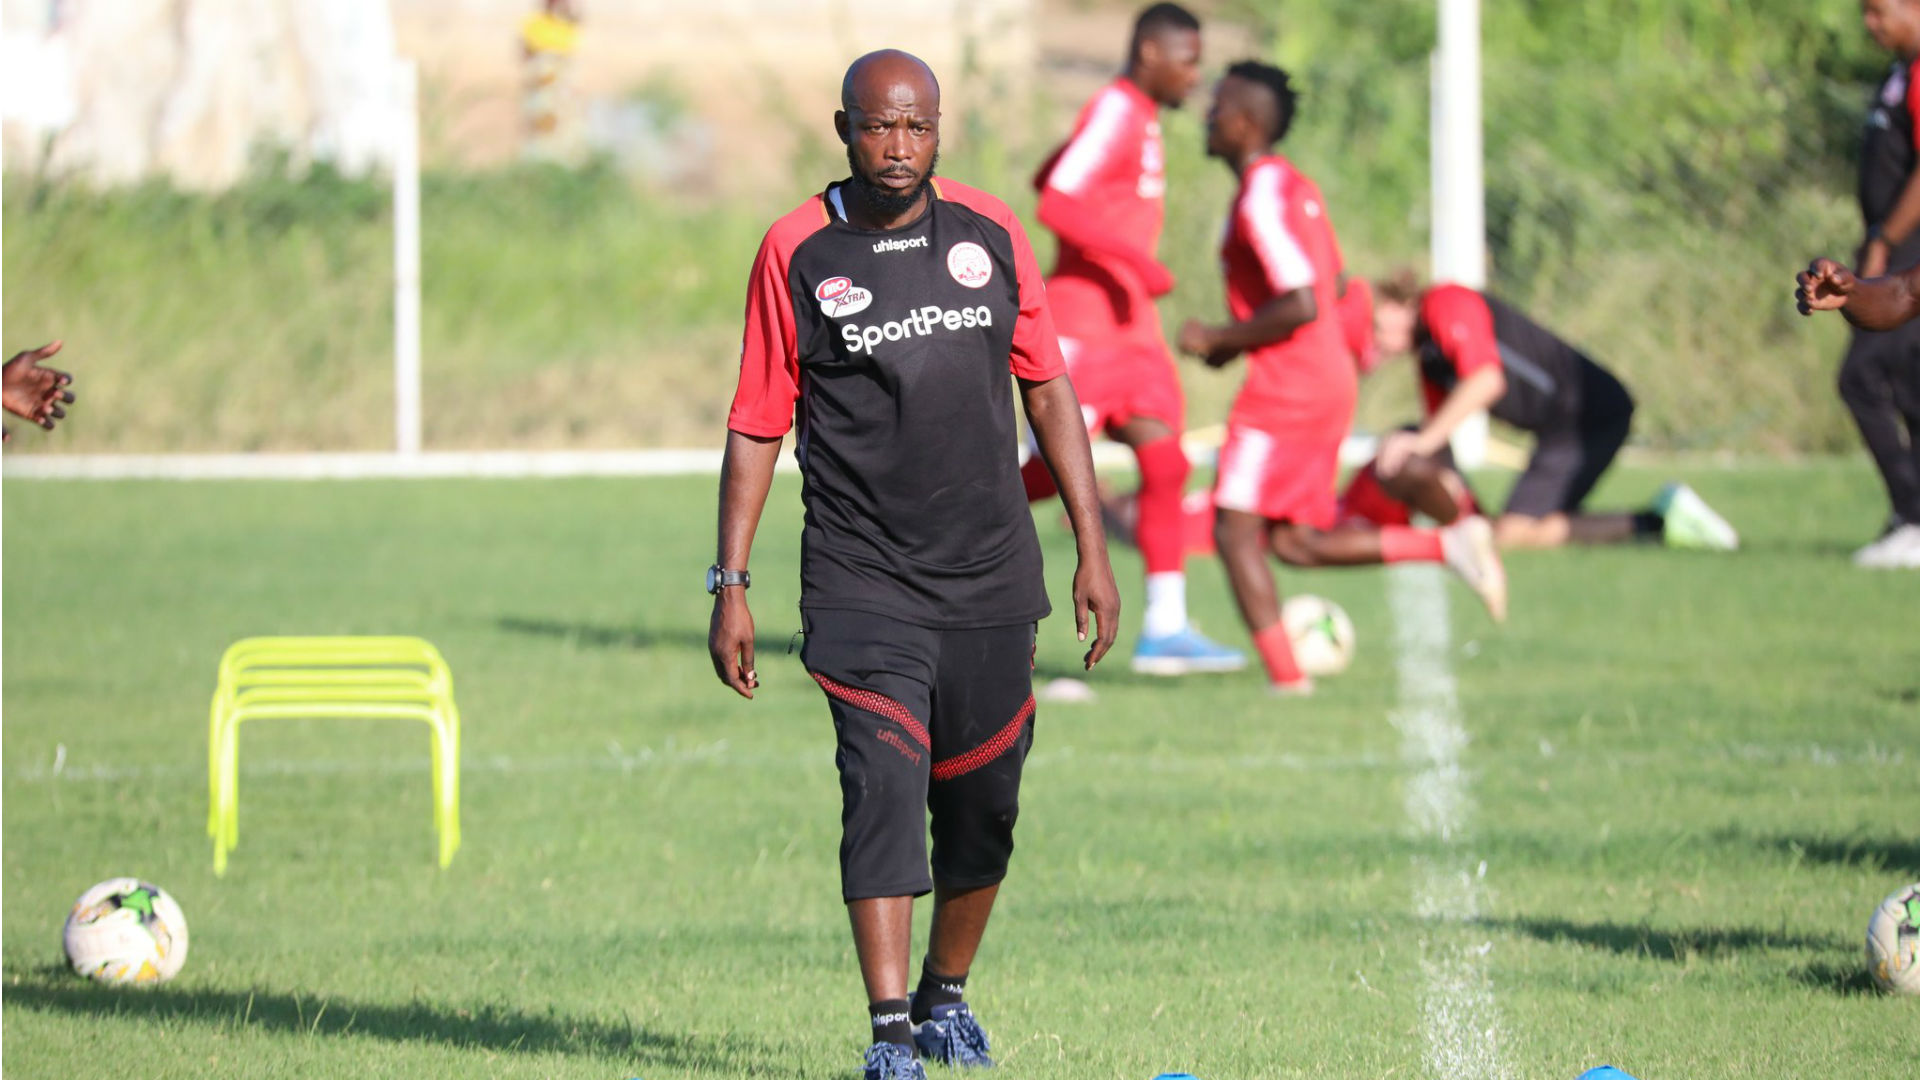 Simba SC part ways with assistant coach Kitambi days after dismissing Aussems